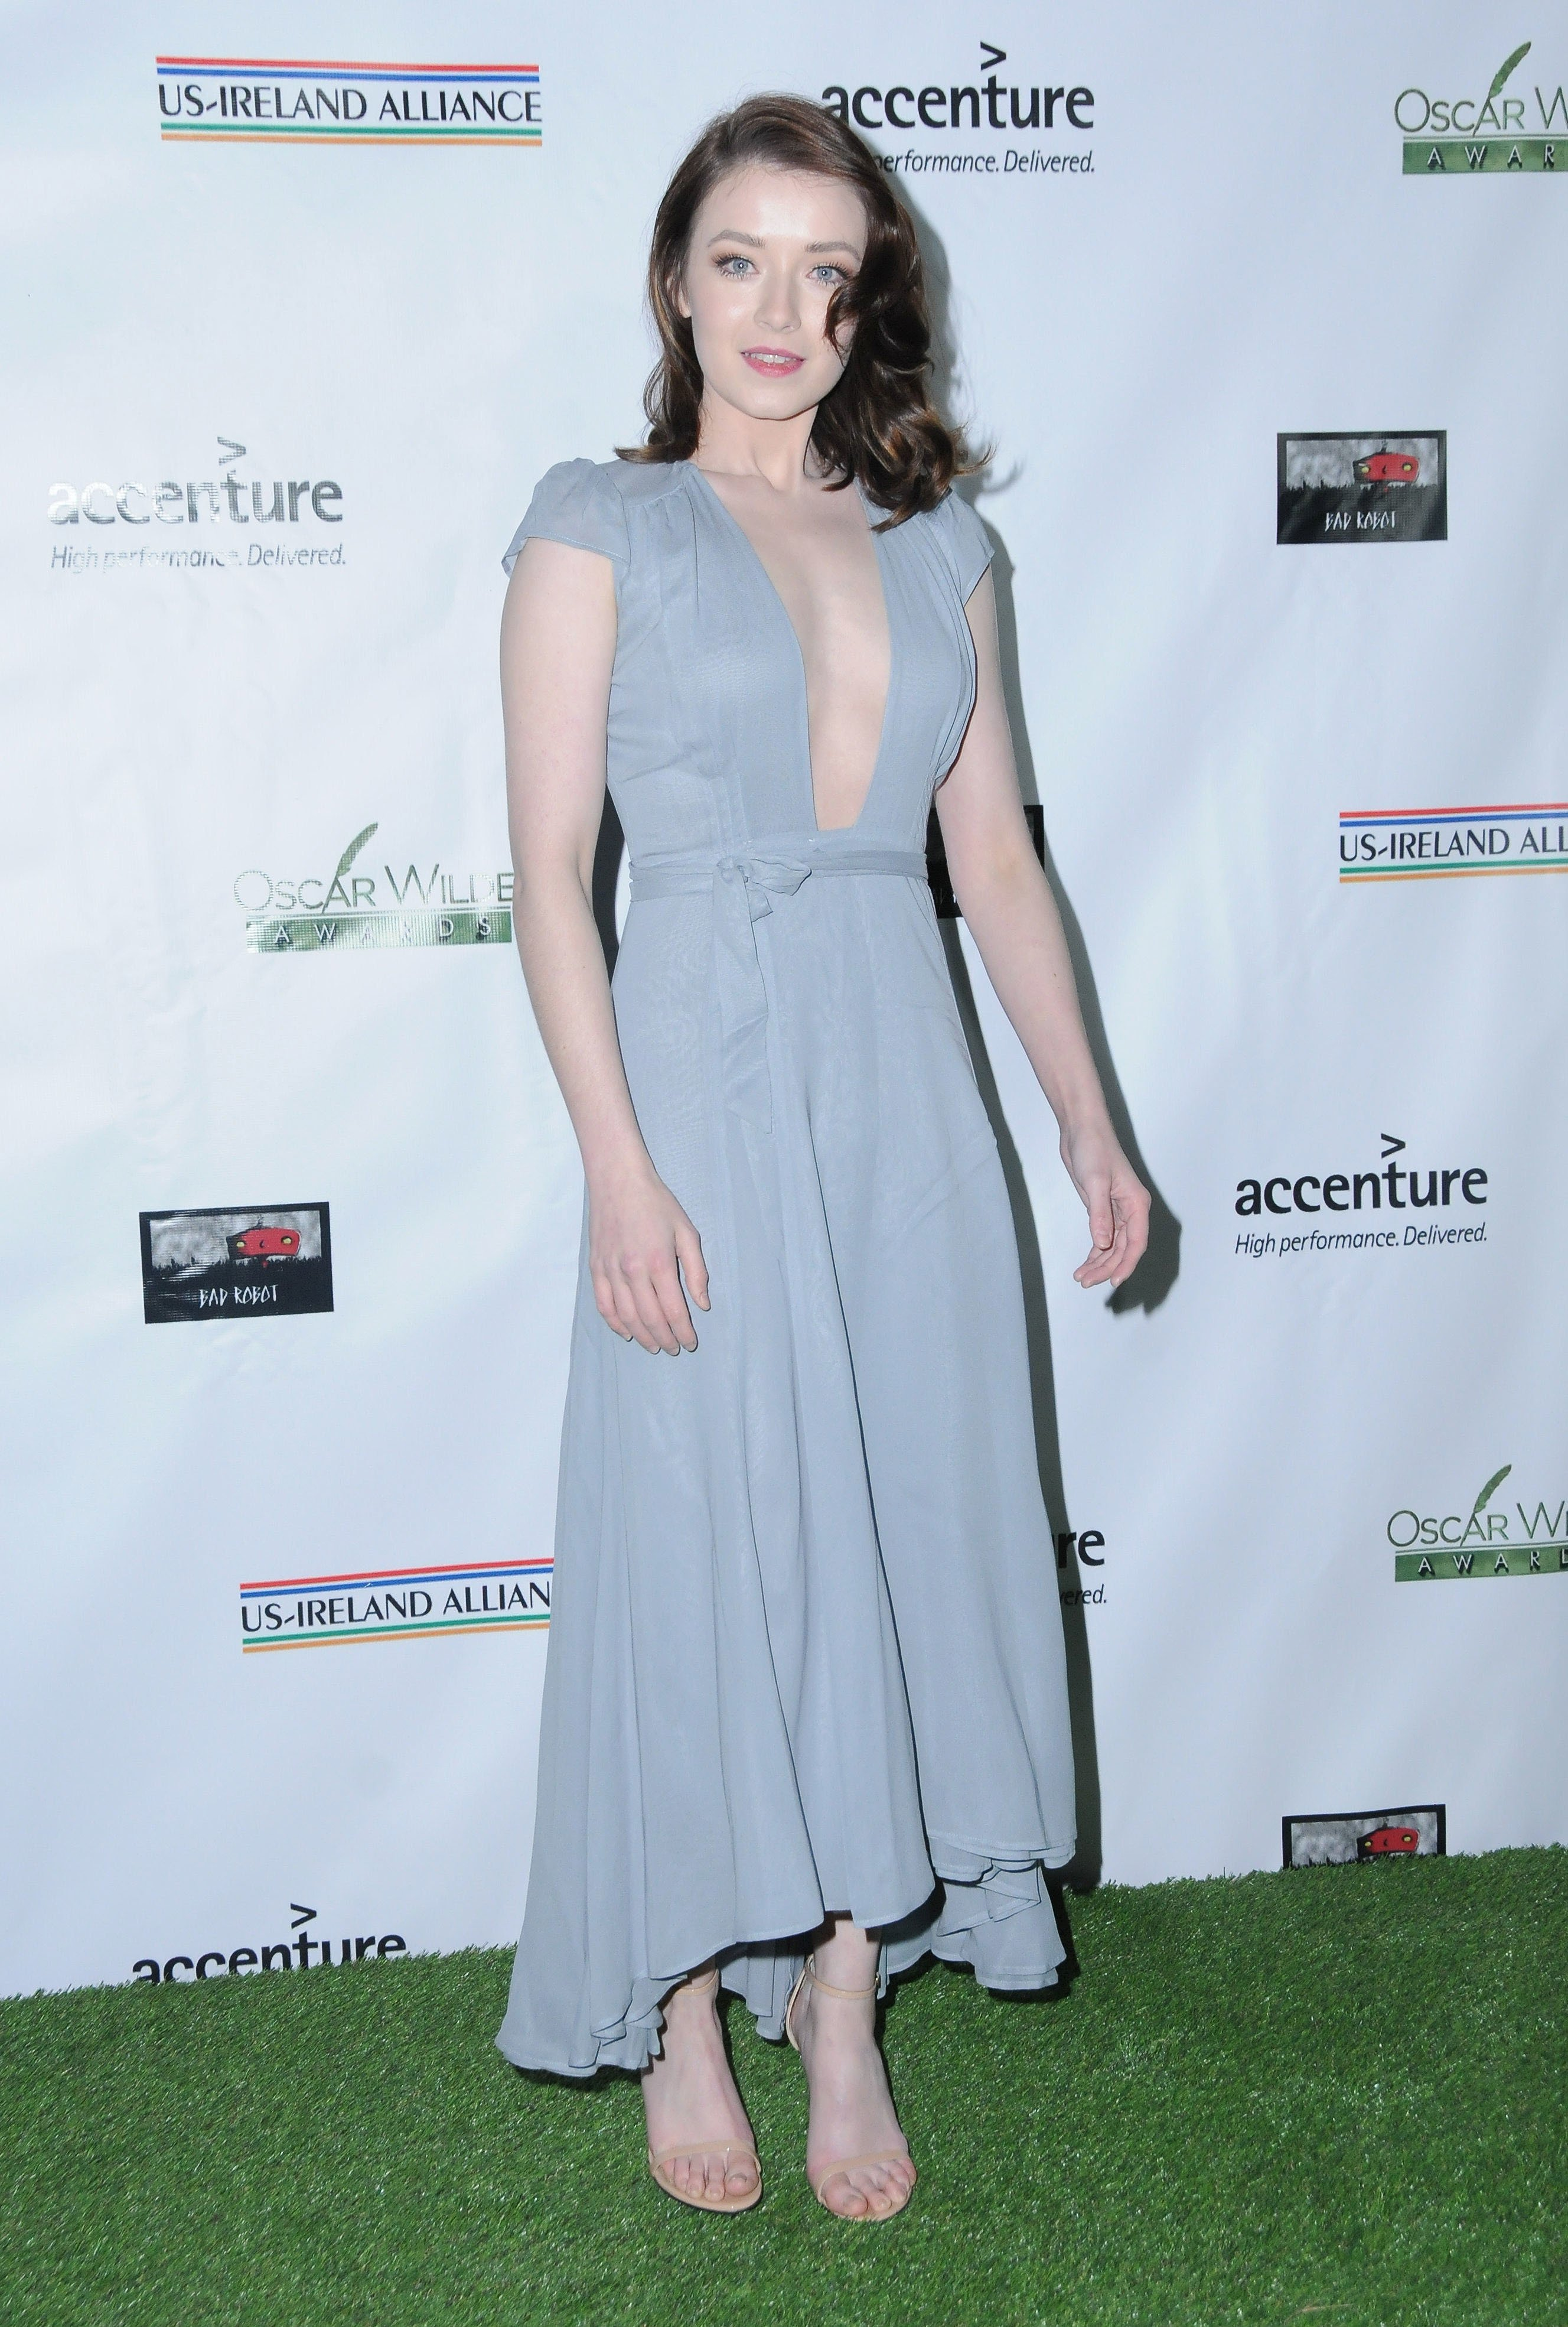 ICloud Sarah Bolger nude (26 foto and video), Ass, Cleavage, Feet, butt 2006